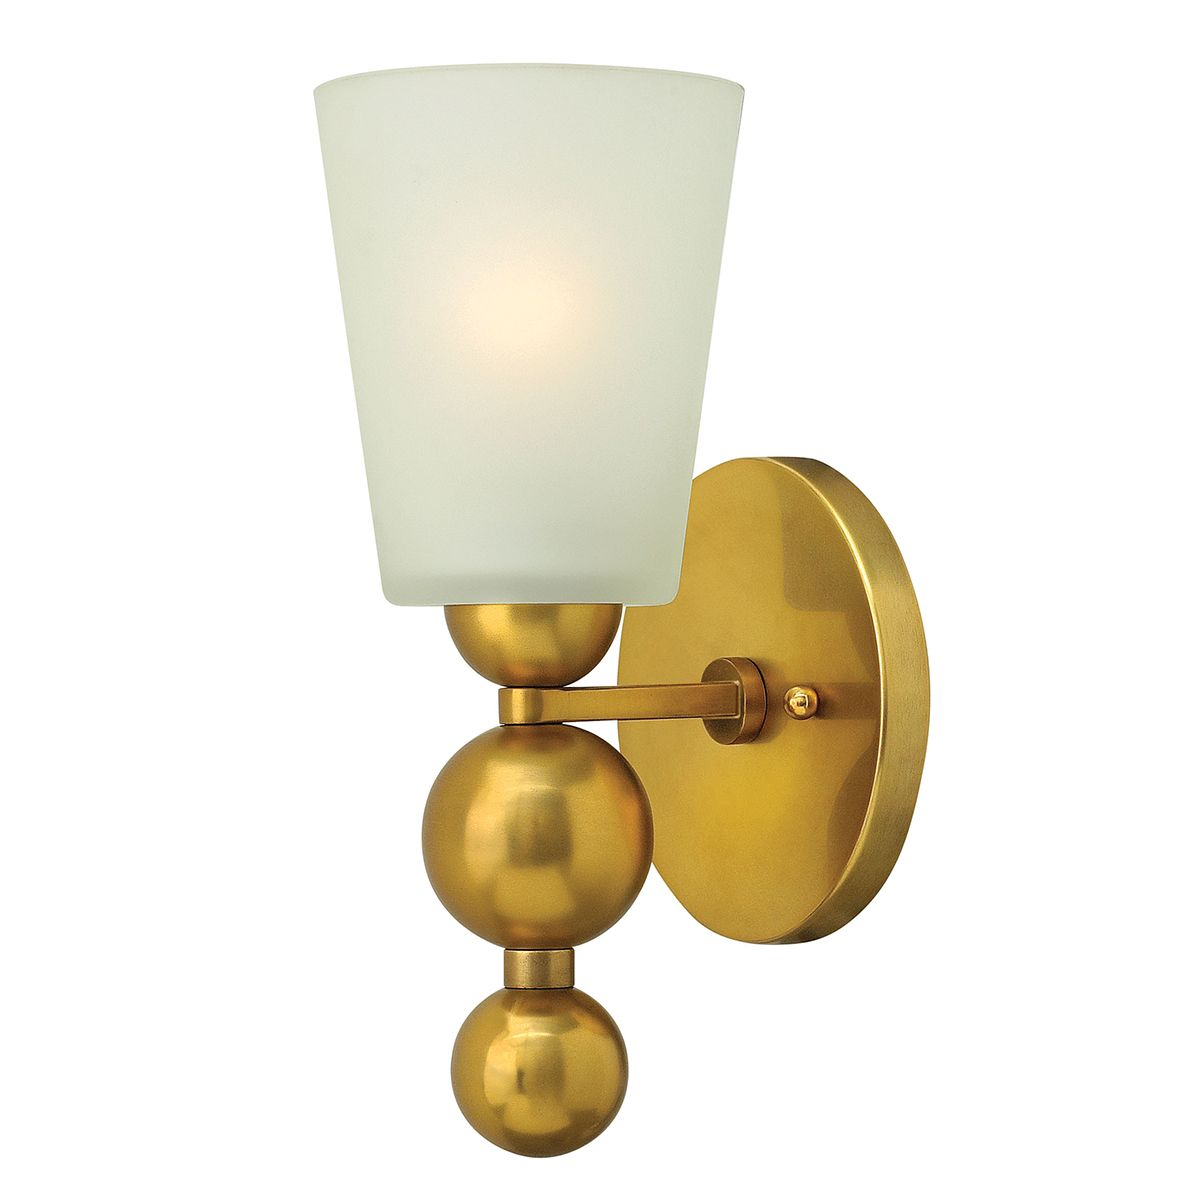 Zelda Single Wall Light in Vintage Brass with an Etched Glass Shade - HINKLEY HK ZELDA1 VS